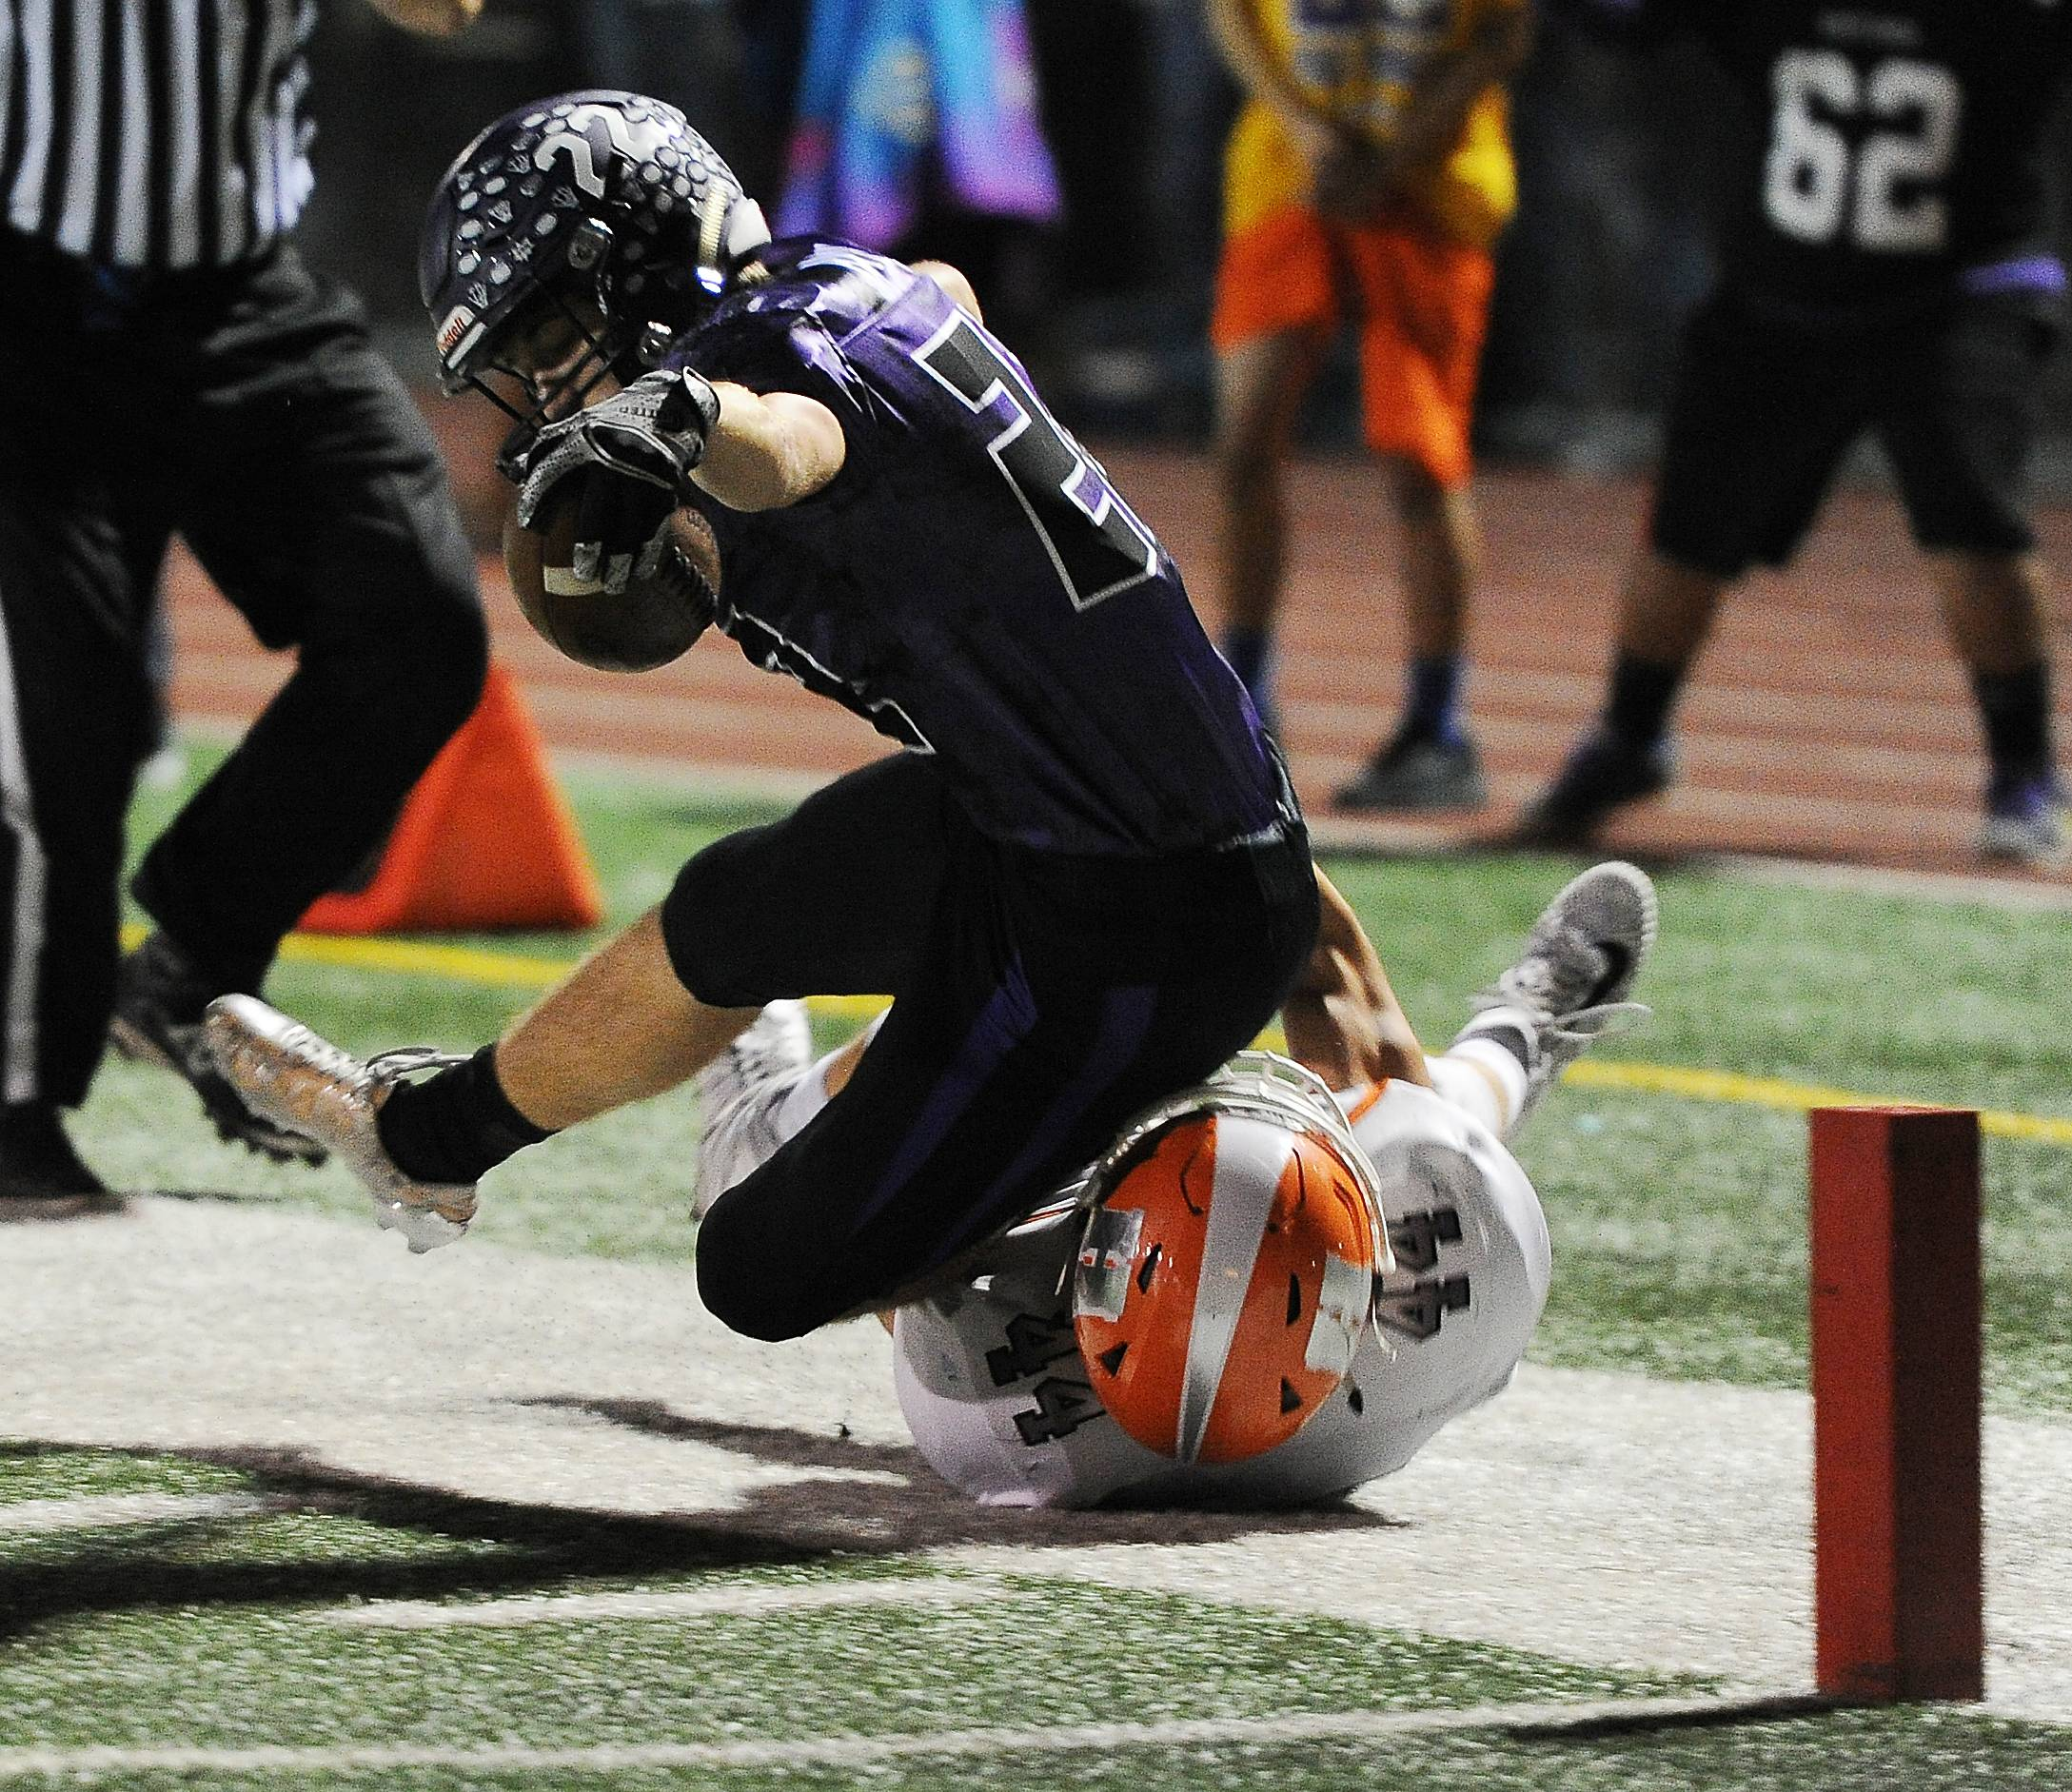 Rolling Meadows' Jared Axelrad reaches out on a touchdown attempt, but Hersey's Colton Kamysz stops him short in the first half at Rolling Meadows on Friday.